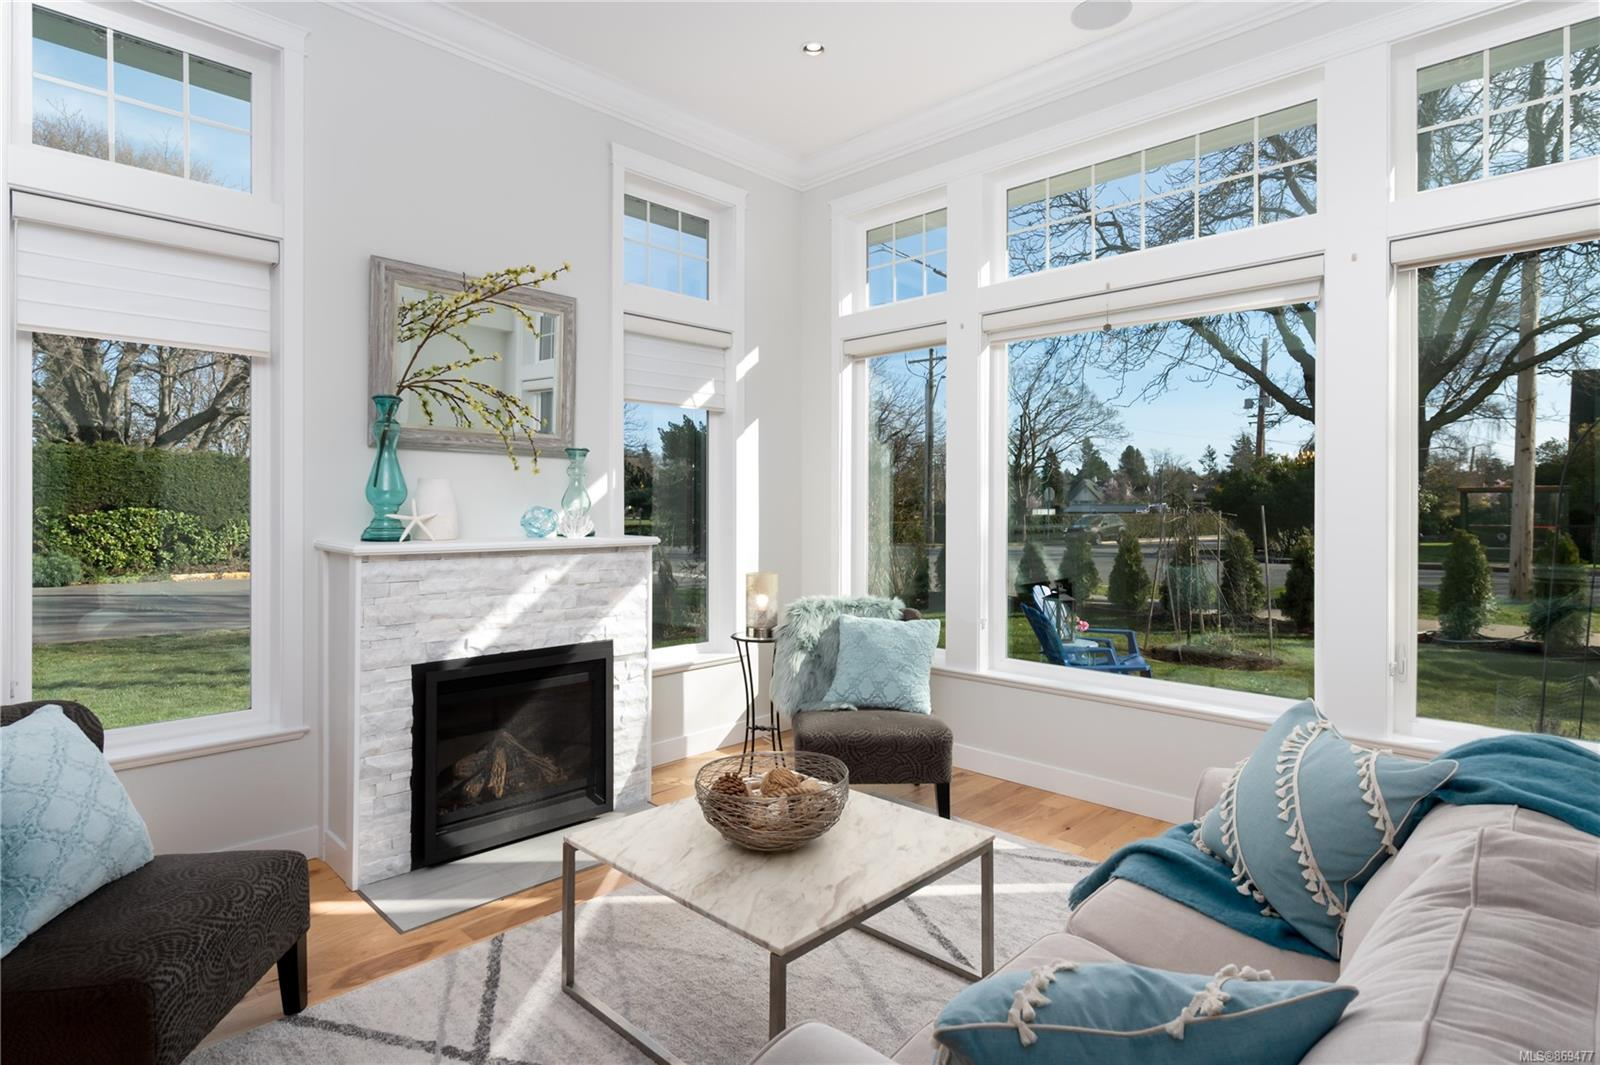 Welcome to 2396 Windsor Road in the coveted district of South Oak Bay. Custom-built in 2018 for the current owner and impeccably maintained, this home exudes quality and warmth throughout. Designed by Victoria Design Group and built to the highest of standards, this character inspired home offers all the modern luxuries one expects in a high-end home, while retaining a traditional feel that keeps it warm and inviting. The well thought out floor plan features formal dining and living areas, an open-concept kitchen with adjacent family room opening to the backyard deck, ideal for entertaining. Features include; large windows, hardwood floors, top-end appliances, and a professionally landscaped yard with irrigation. Upstairs you will find a spacious primary bedroom with walk-in closet and ensuite bath, plus two additional bedrooms and laundry room. Just a short stroll to The Avenue, Oak Bay Marina, Oak Bay Beach Hotel, Victoria Golf Club, various parks and the oceanfront. A must see!